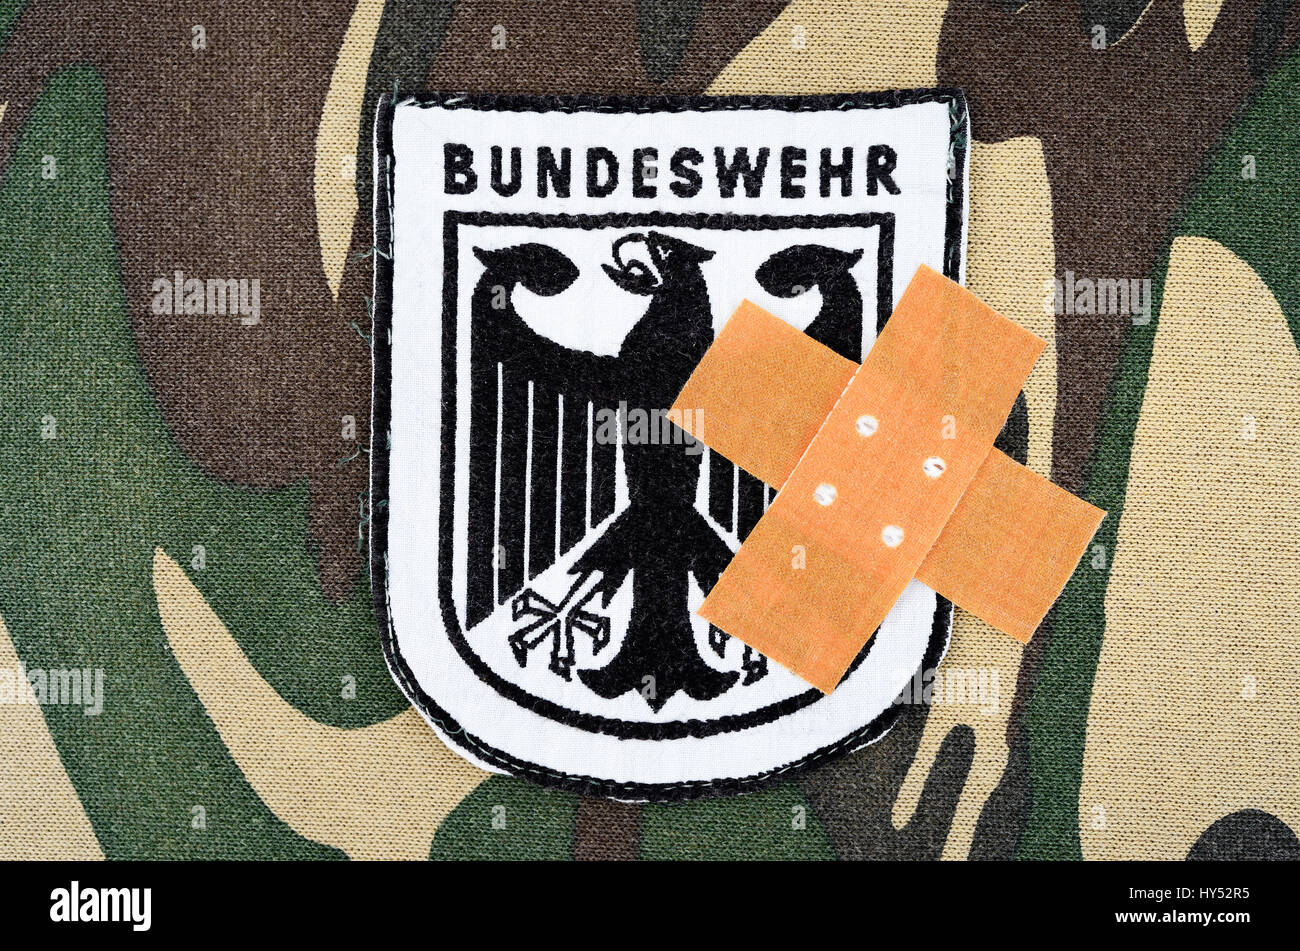 Armed forces badges with plaster, symbolic photo equipment faults, Bundeswehr-Abzeichen mit Pflaster, Symbolfoto - Stock Image